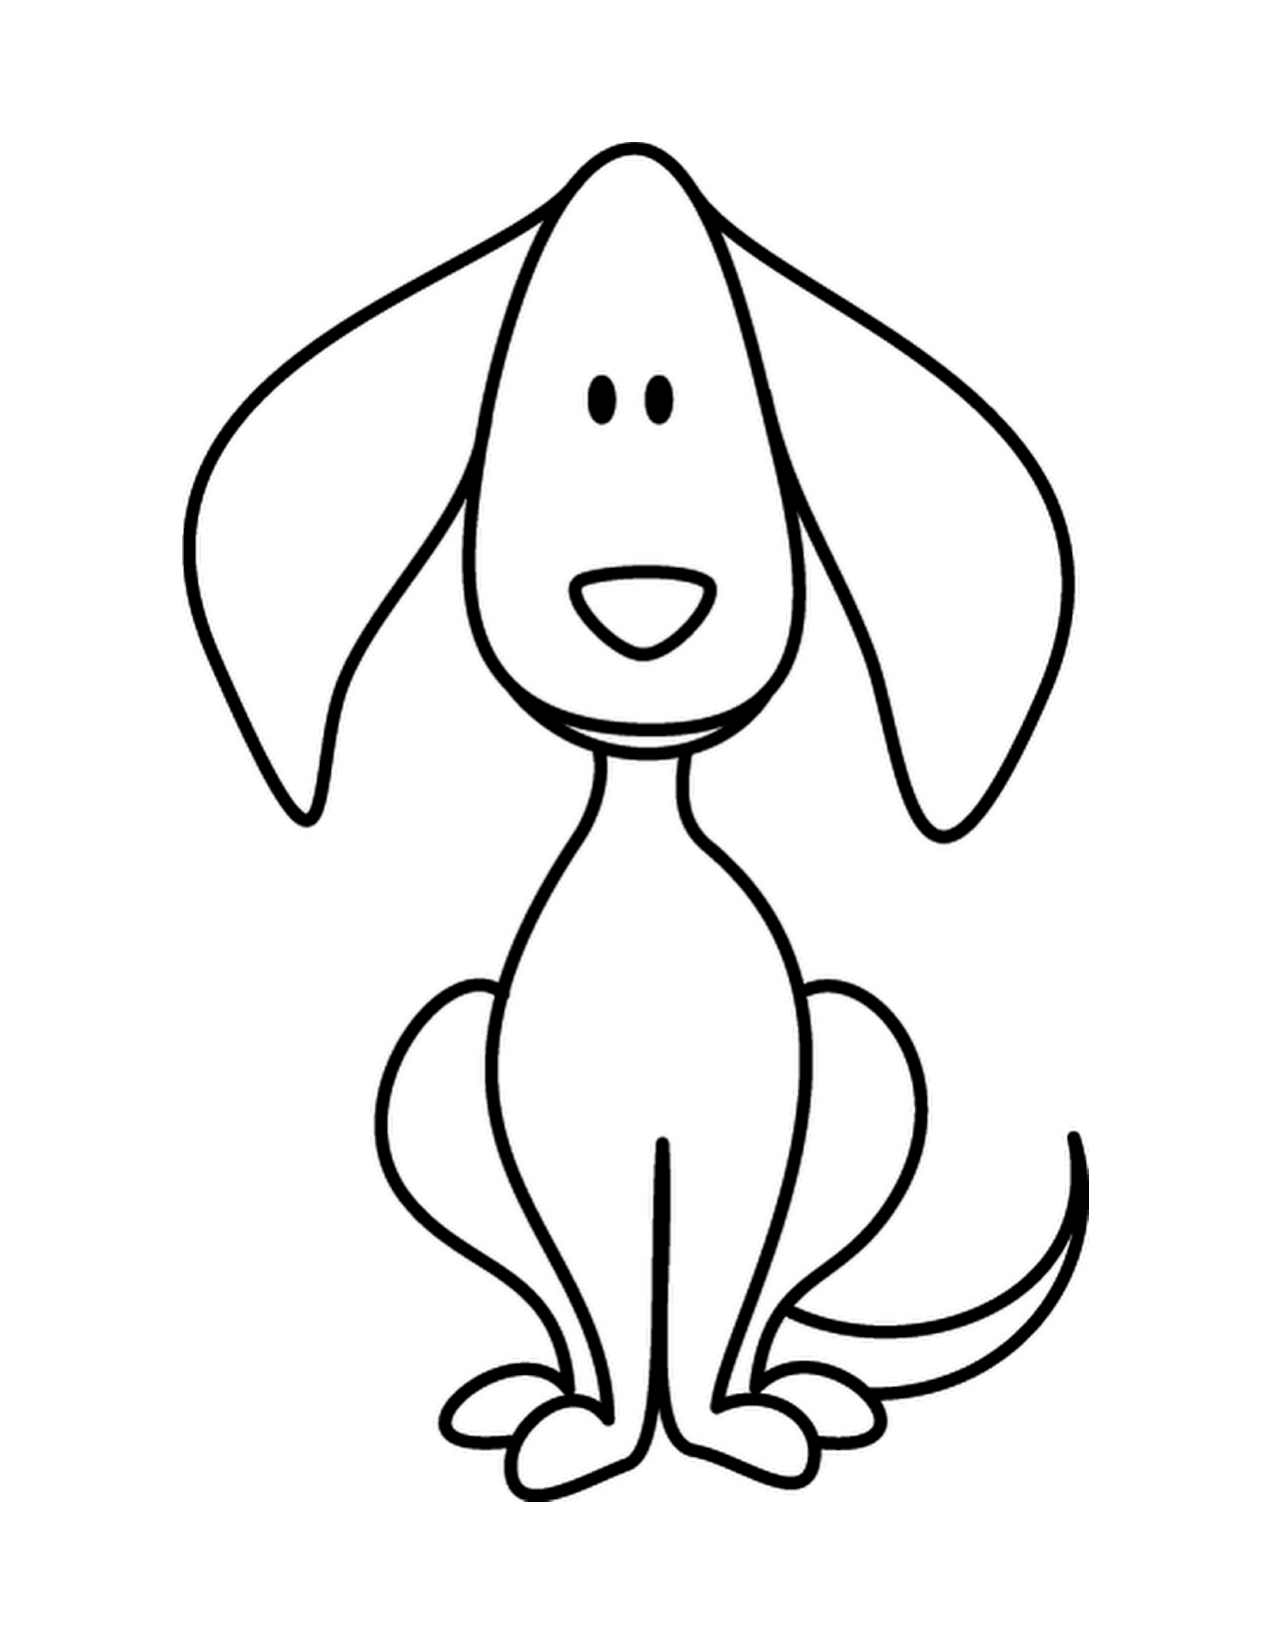 1275x1650 Simple Sketch For Kid Simple Drawing Of A Dog Dog Drawings